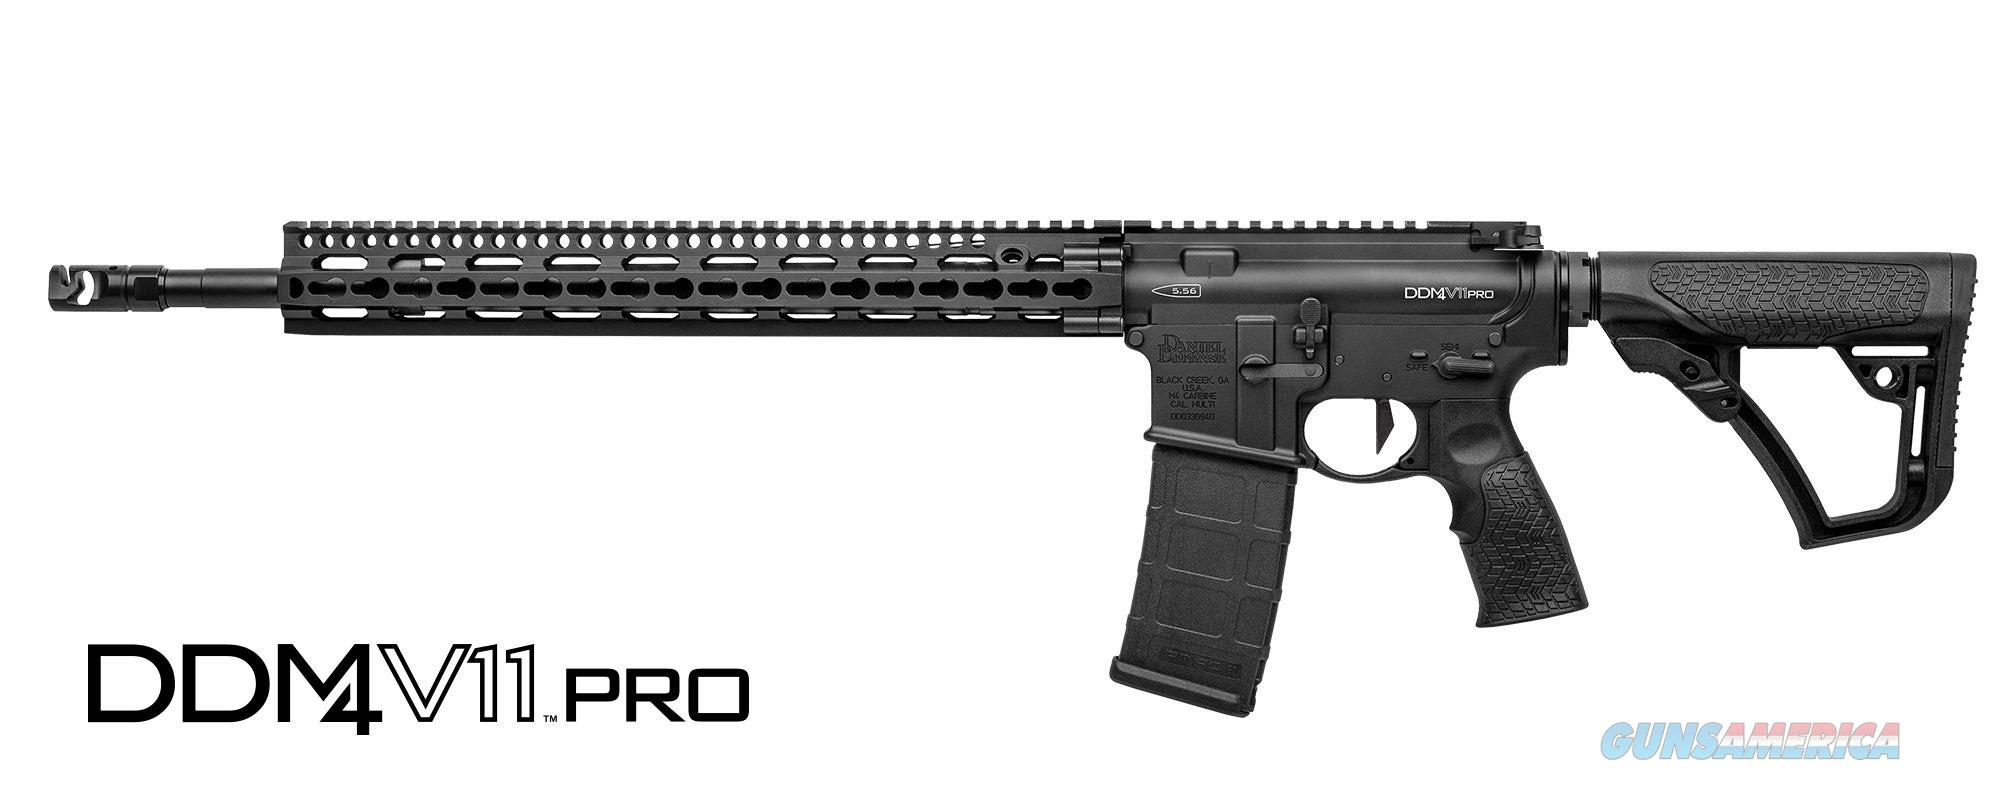 NIB Daniel Defense V11 PRO 02-151-12033-047 NO CC FEE FREE SHIP!  Guns > Rifles > Daniel Defense > Complete Rifles